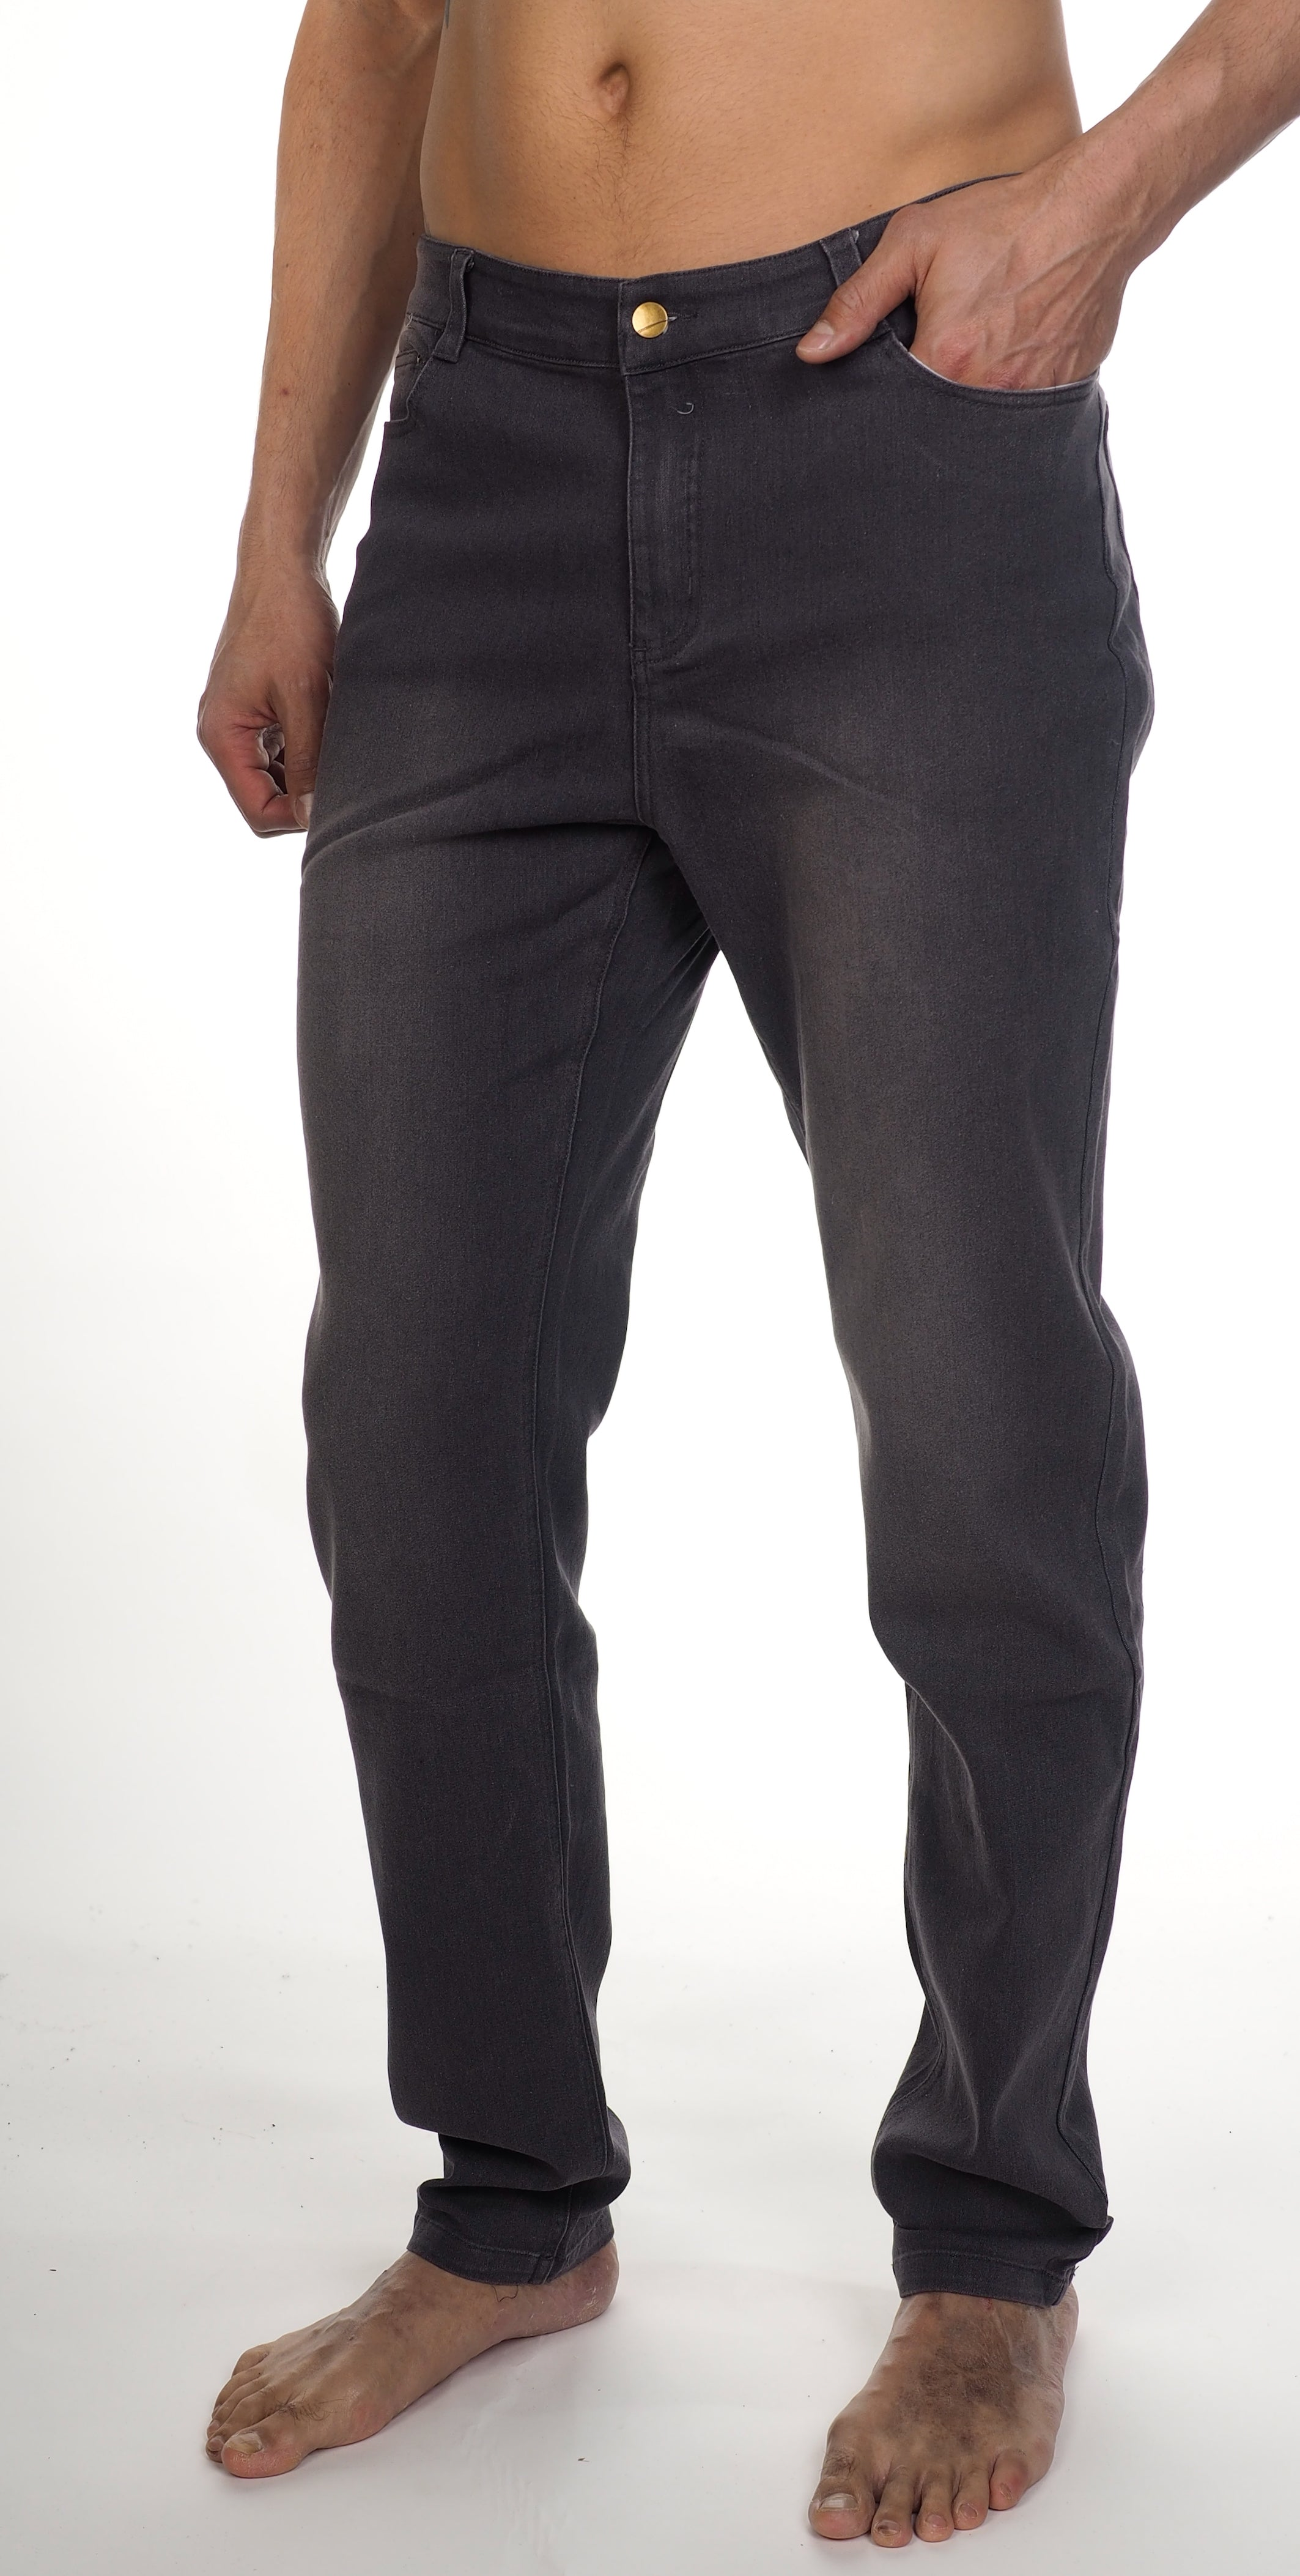 JJ Stretch Jeans - Charcoal